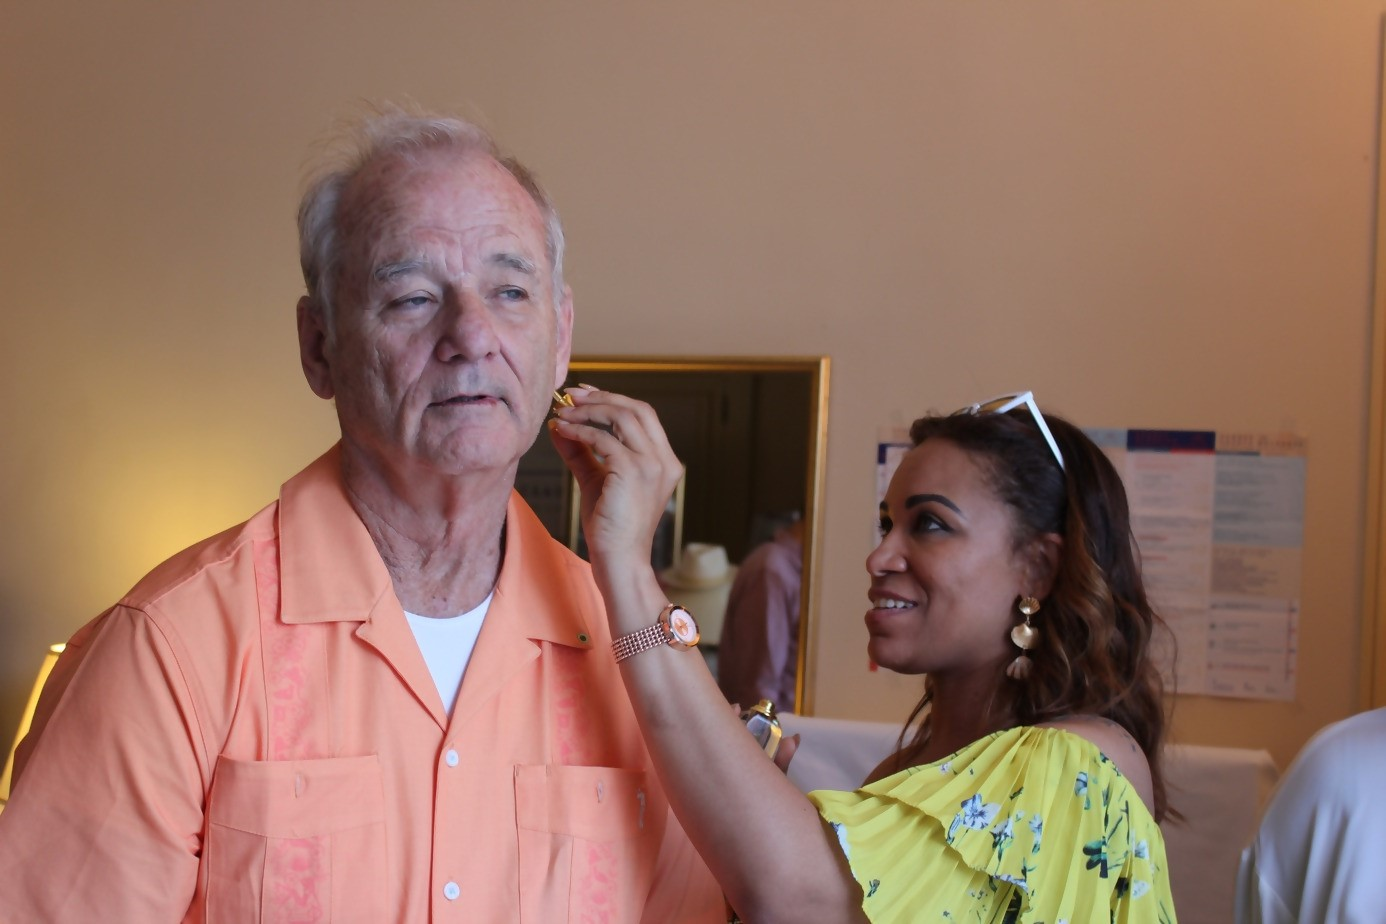 Me putting E.F. Nomad on Bill Murray during Cannes Film Festival (DPA Celebrity Suite)